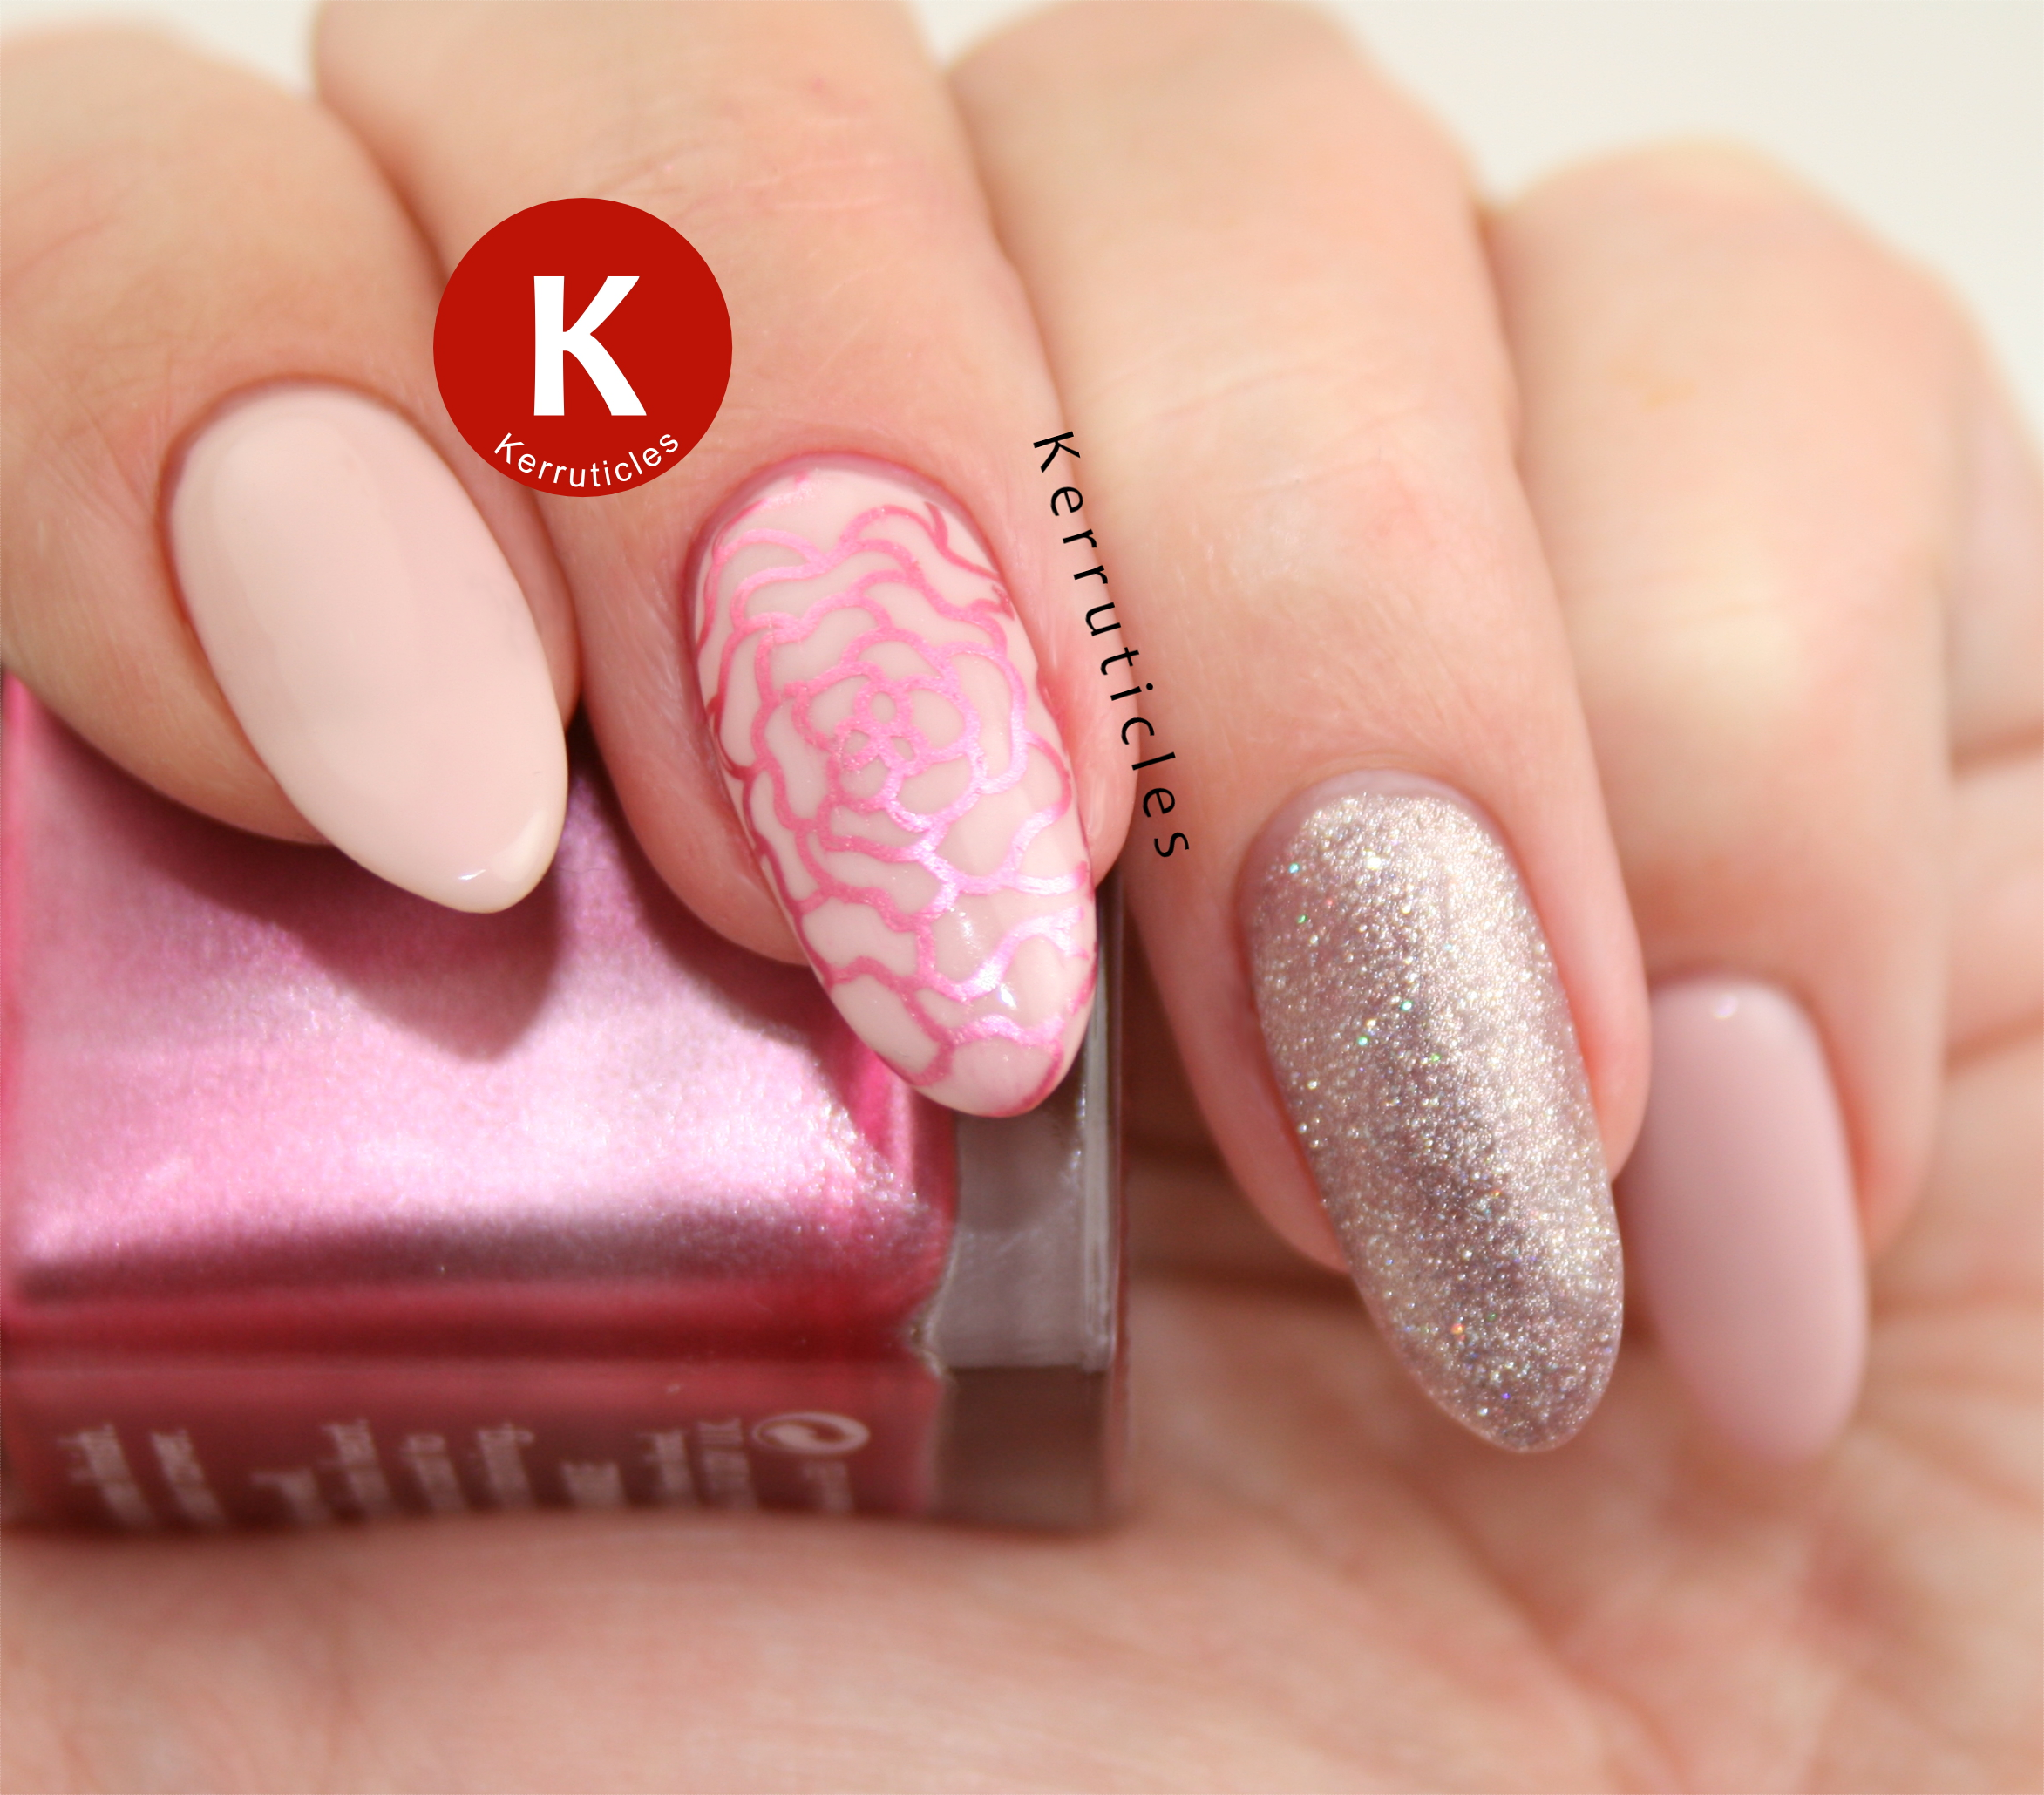 Kerruticles Claire Kerr S Uk Nails Blog Nail Polish And Nail Art